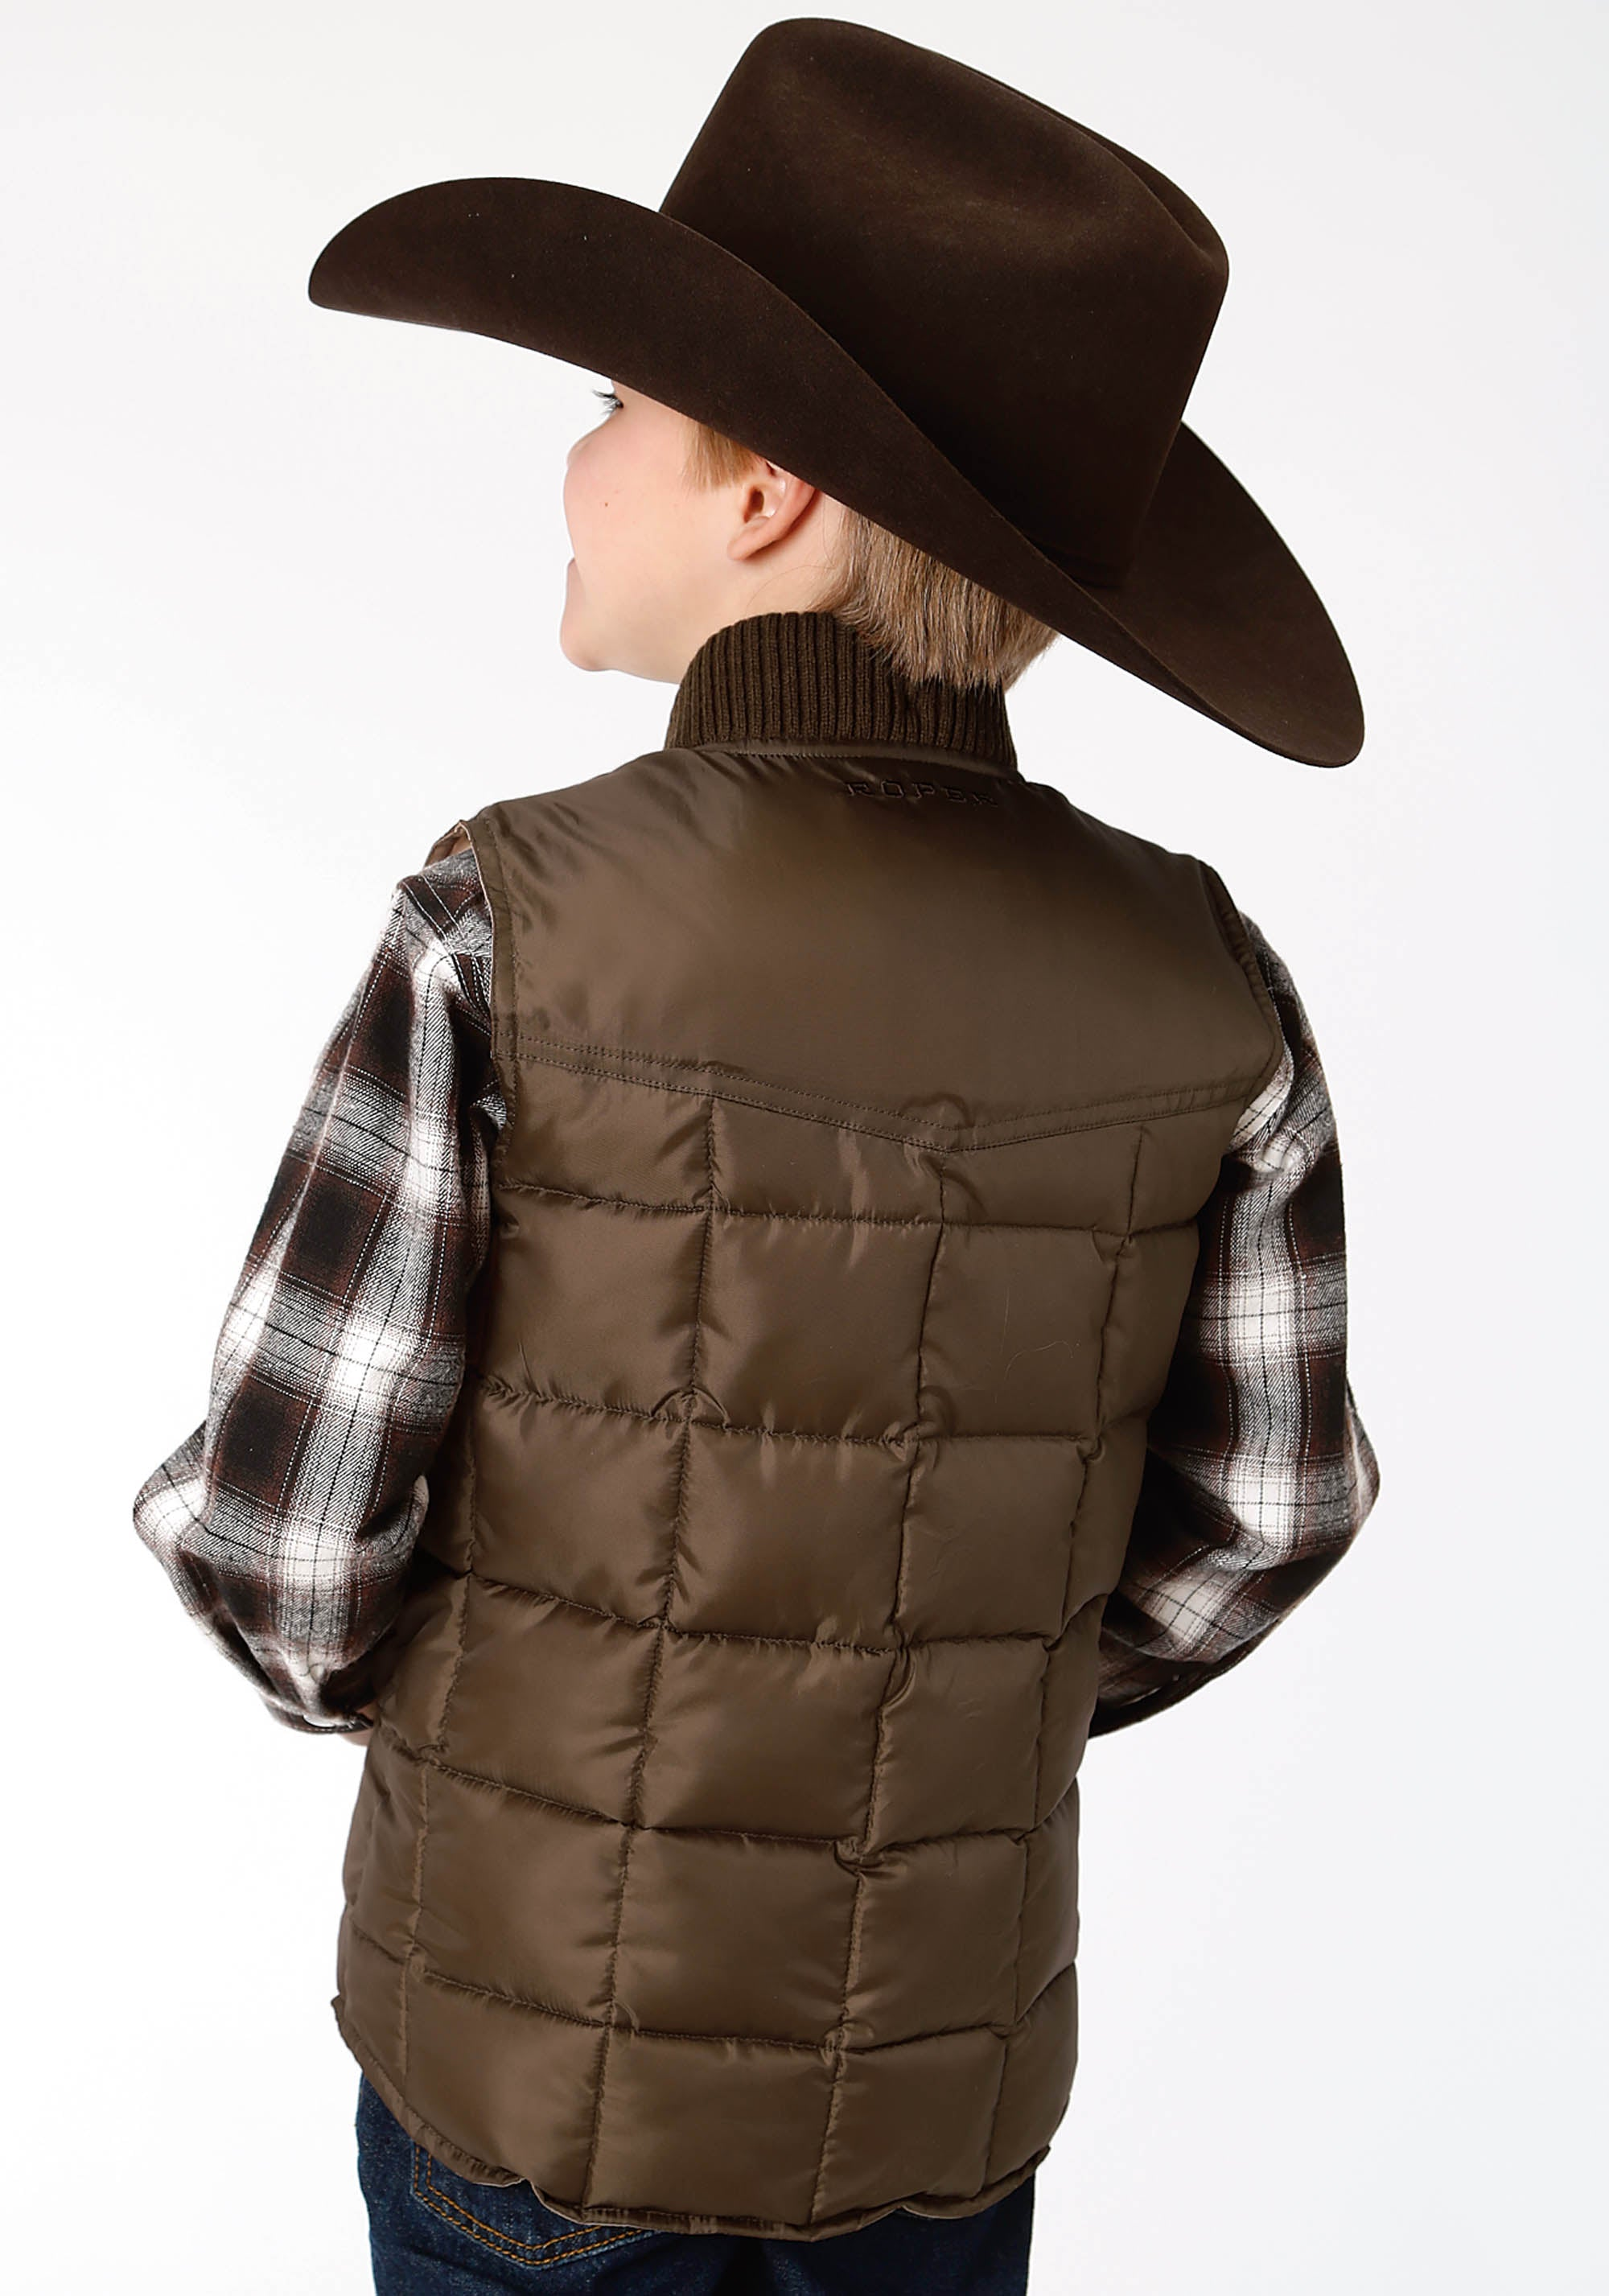 OUTERWEAR BOYS BROWN 1473 CHOC QUILTED POLY-FILLED VEST OPENING PRICE POINT